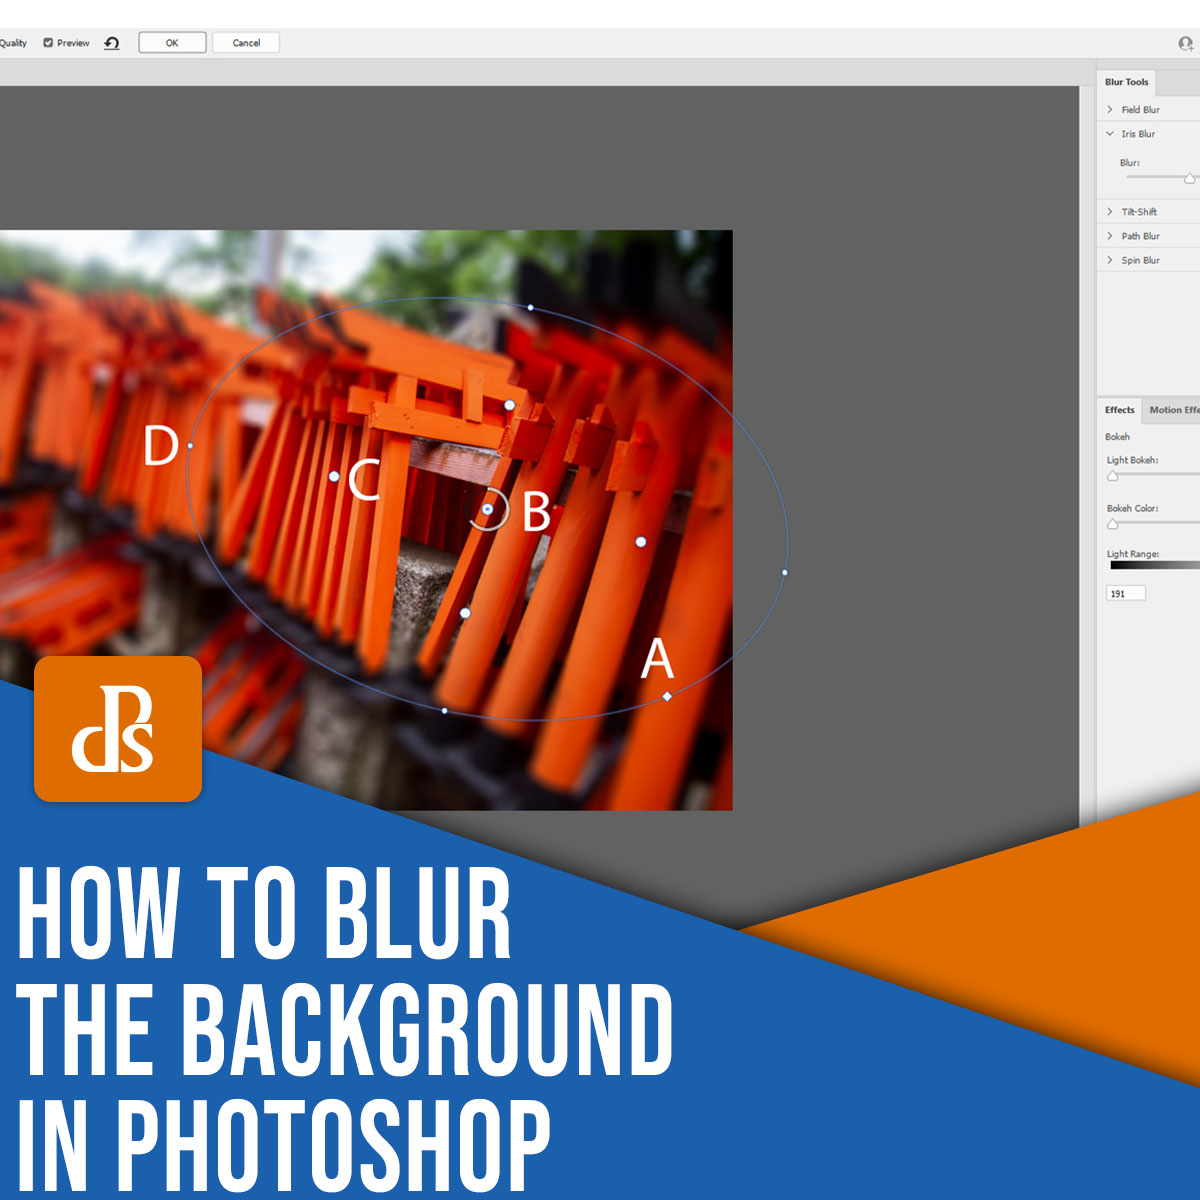 how to blur the background in Photoshop